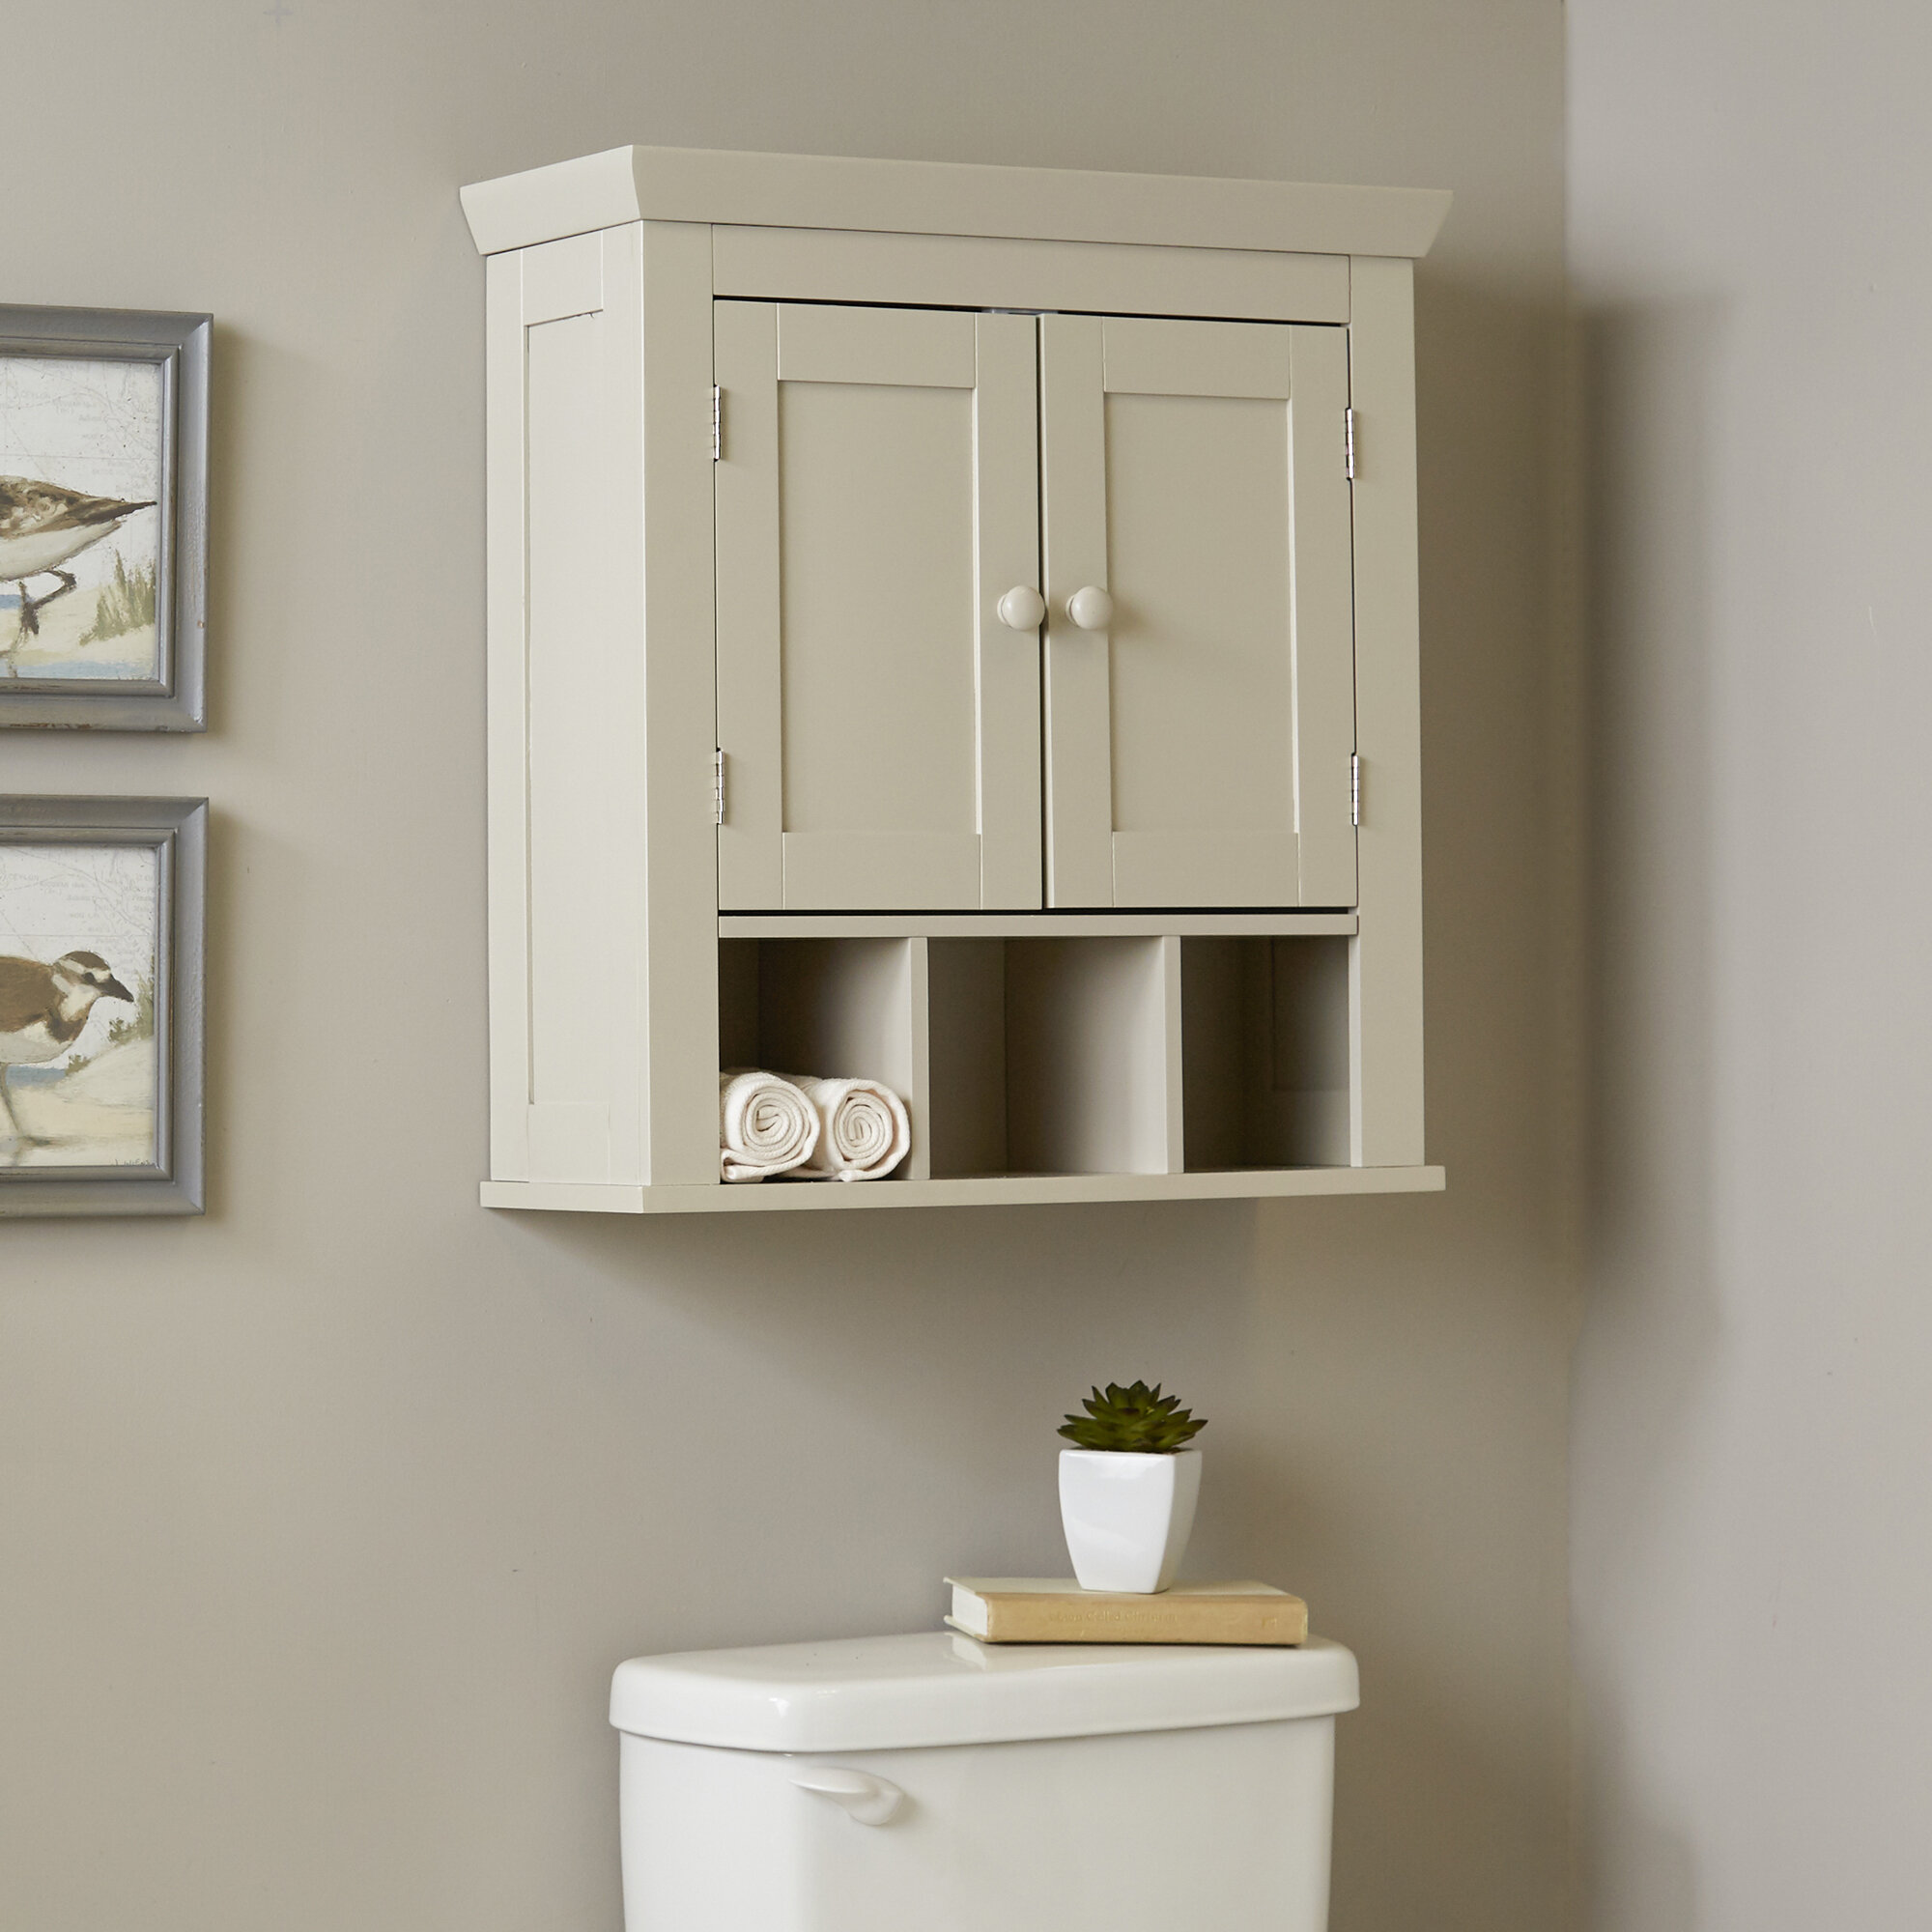 Birch Lane Caraway 22 4 W X 24 H Wall Mounted Cabinet Reviews